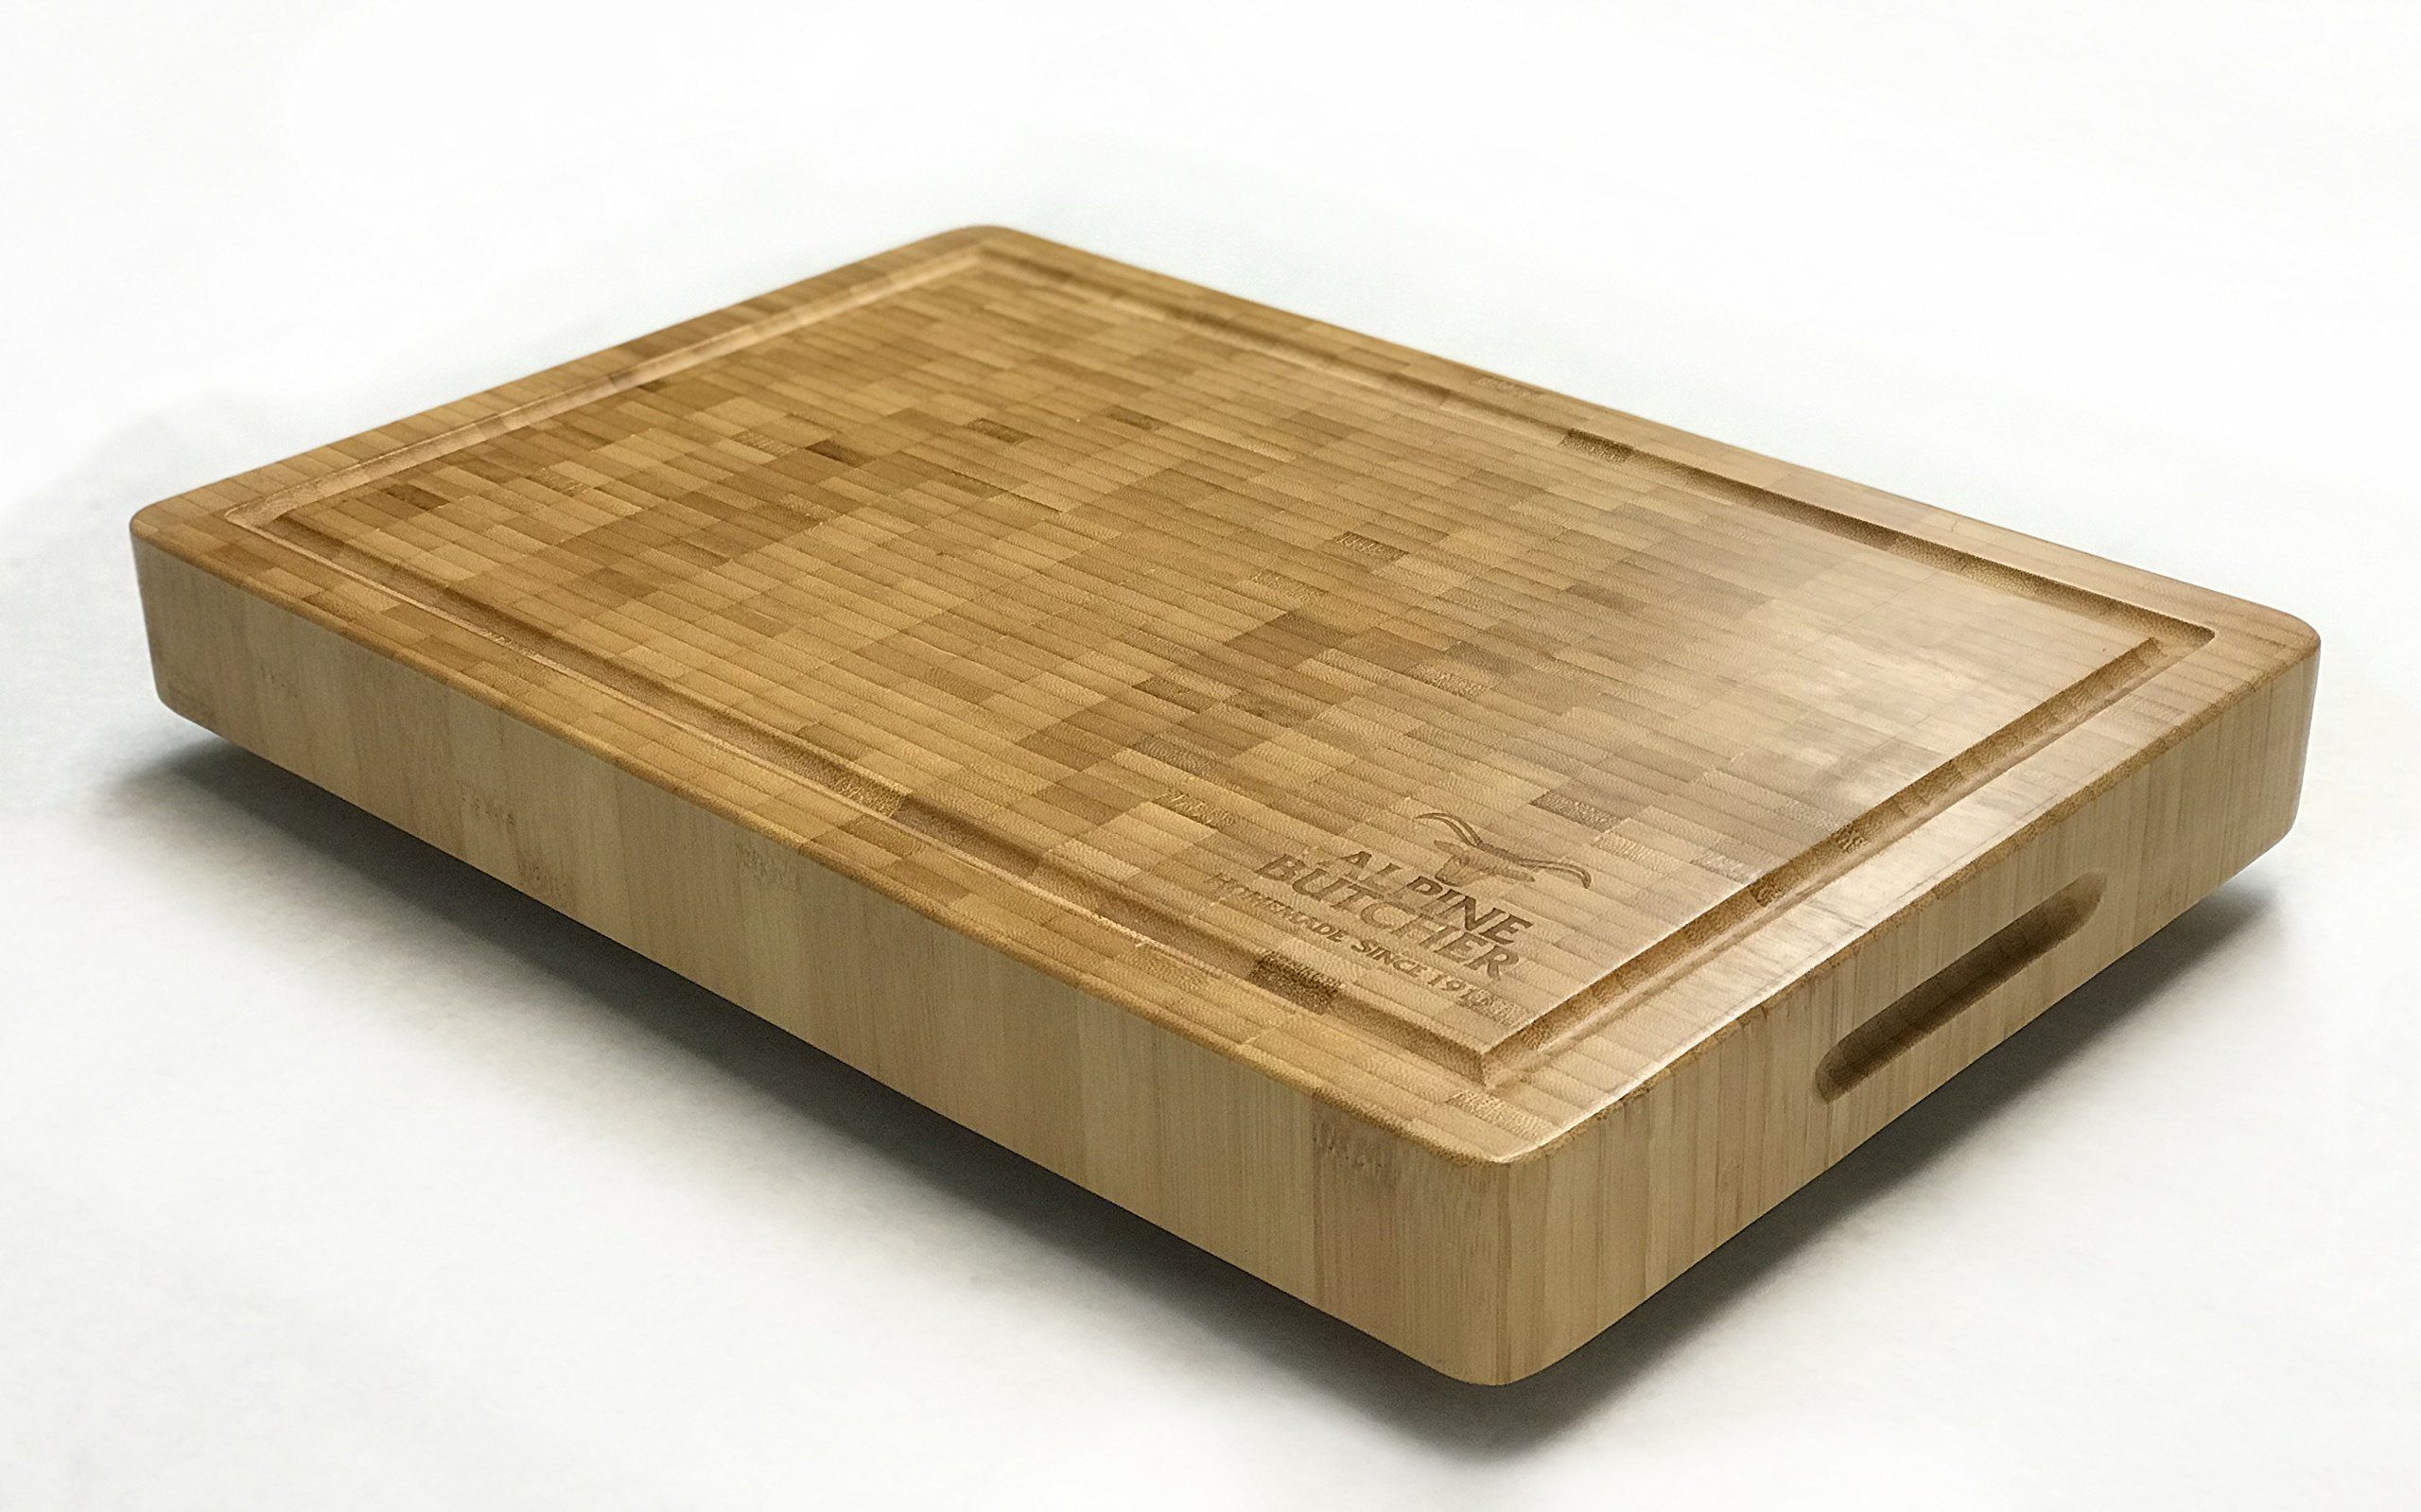 Alpine Butcher - Old Fashioned Solid Butcher Block with Wooden Feet